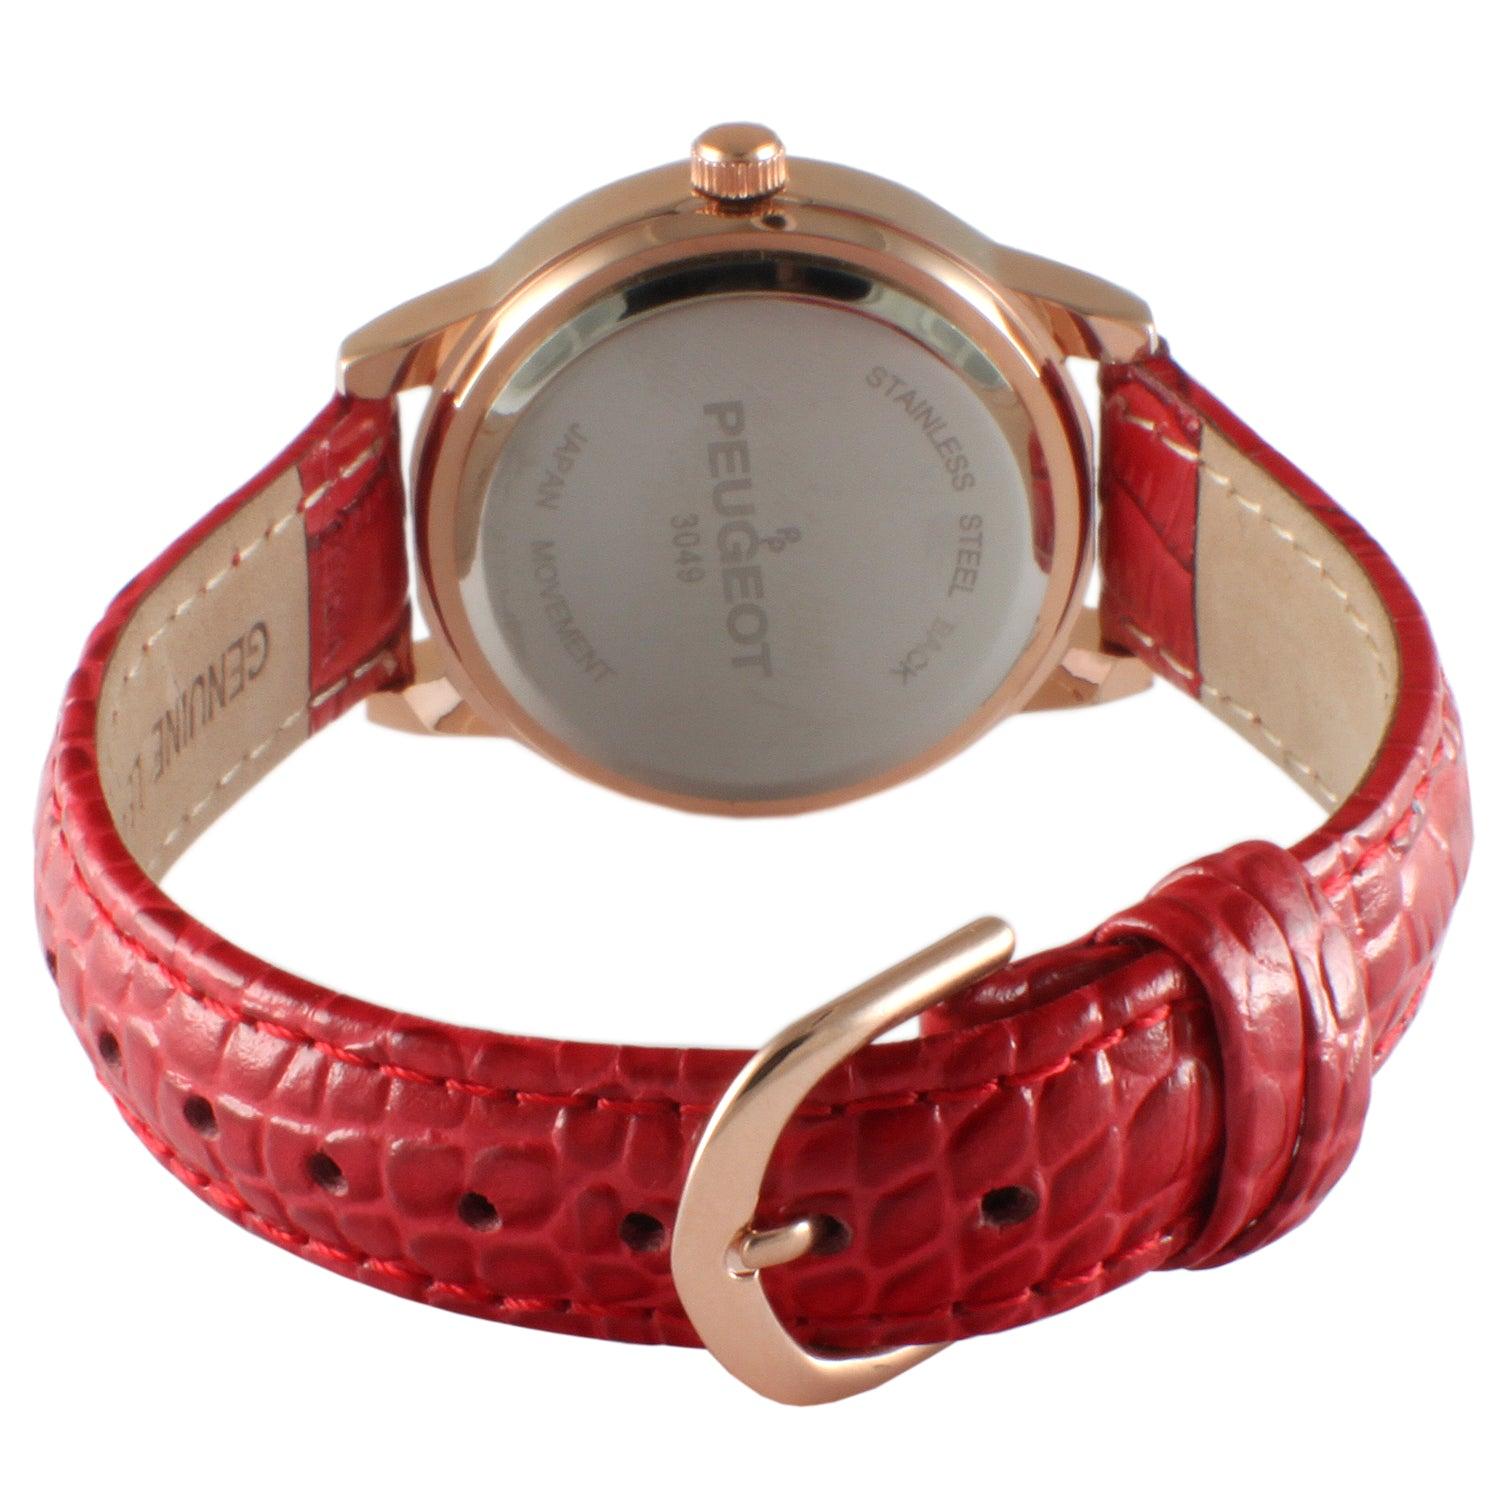 Classic Round Crystal Bezel Watch - Red